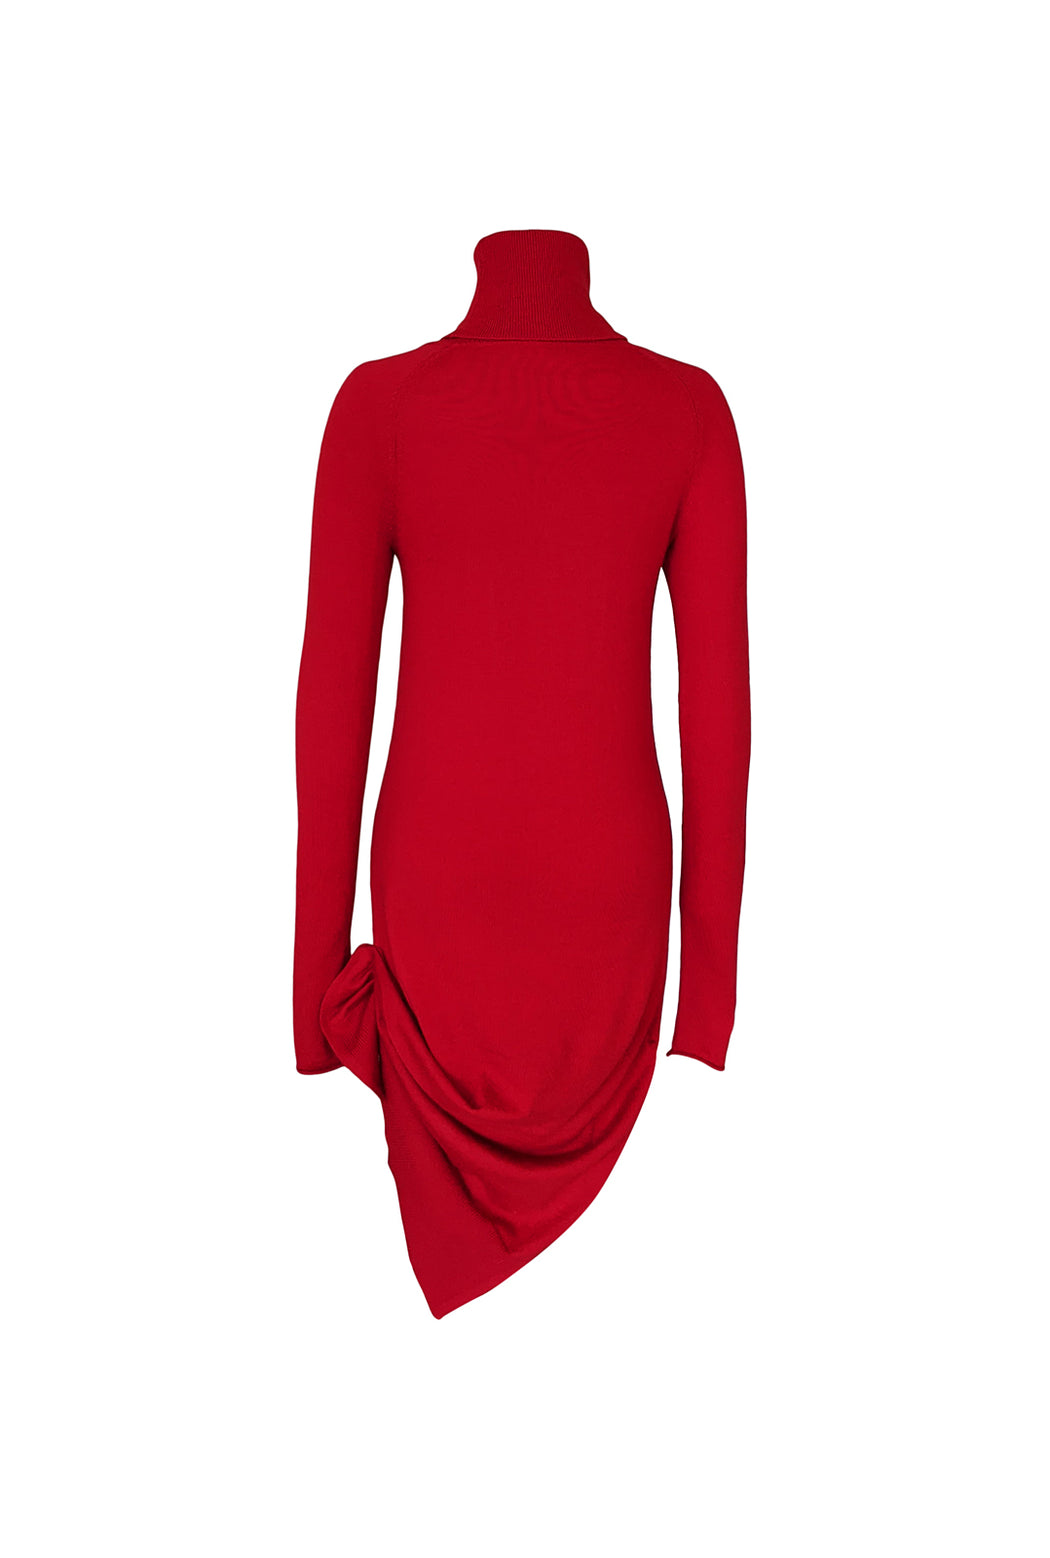 CELINE MERINO WOOL DRESS RED